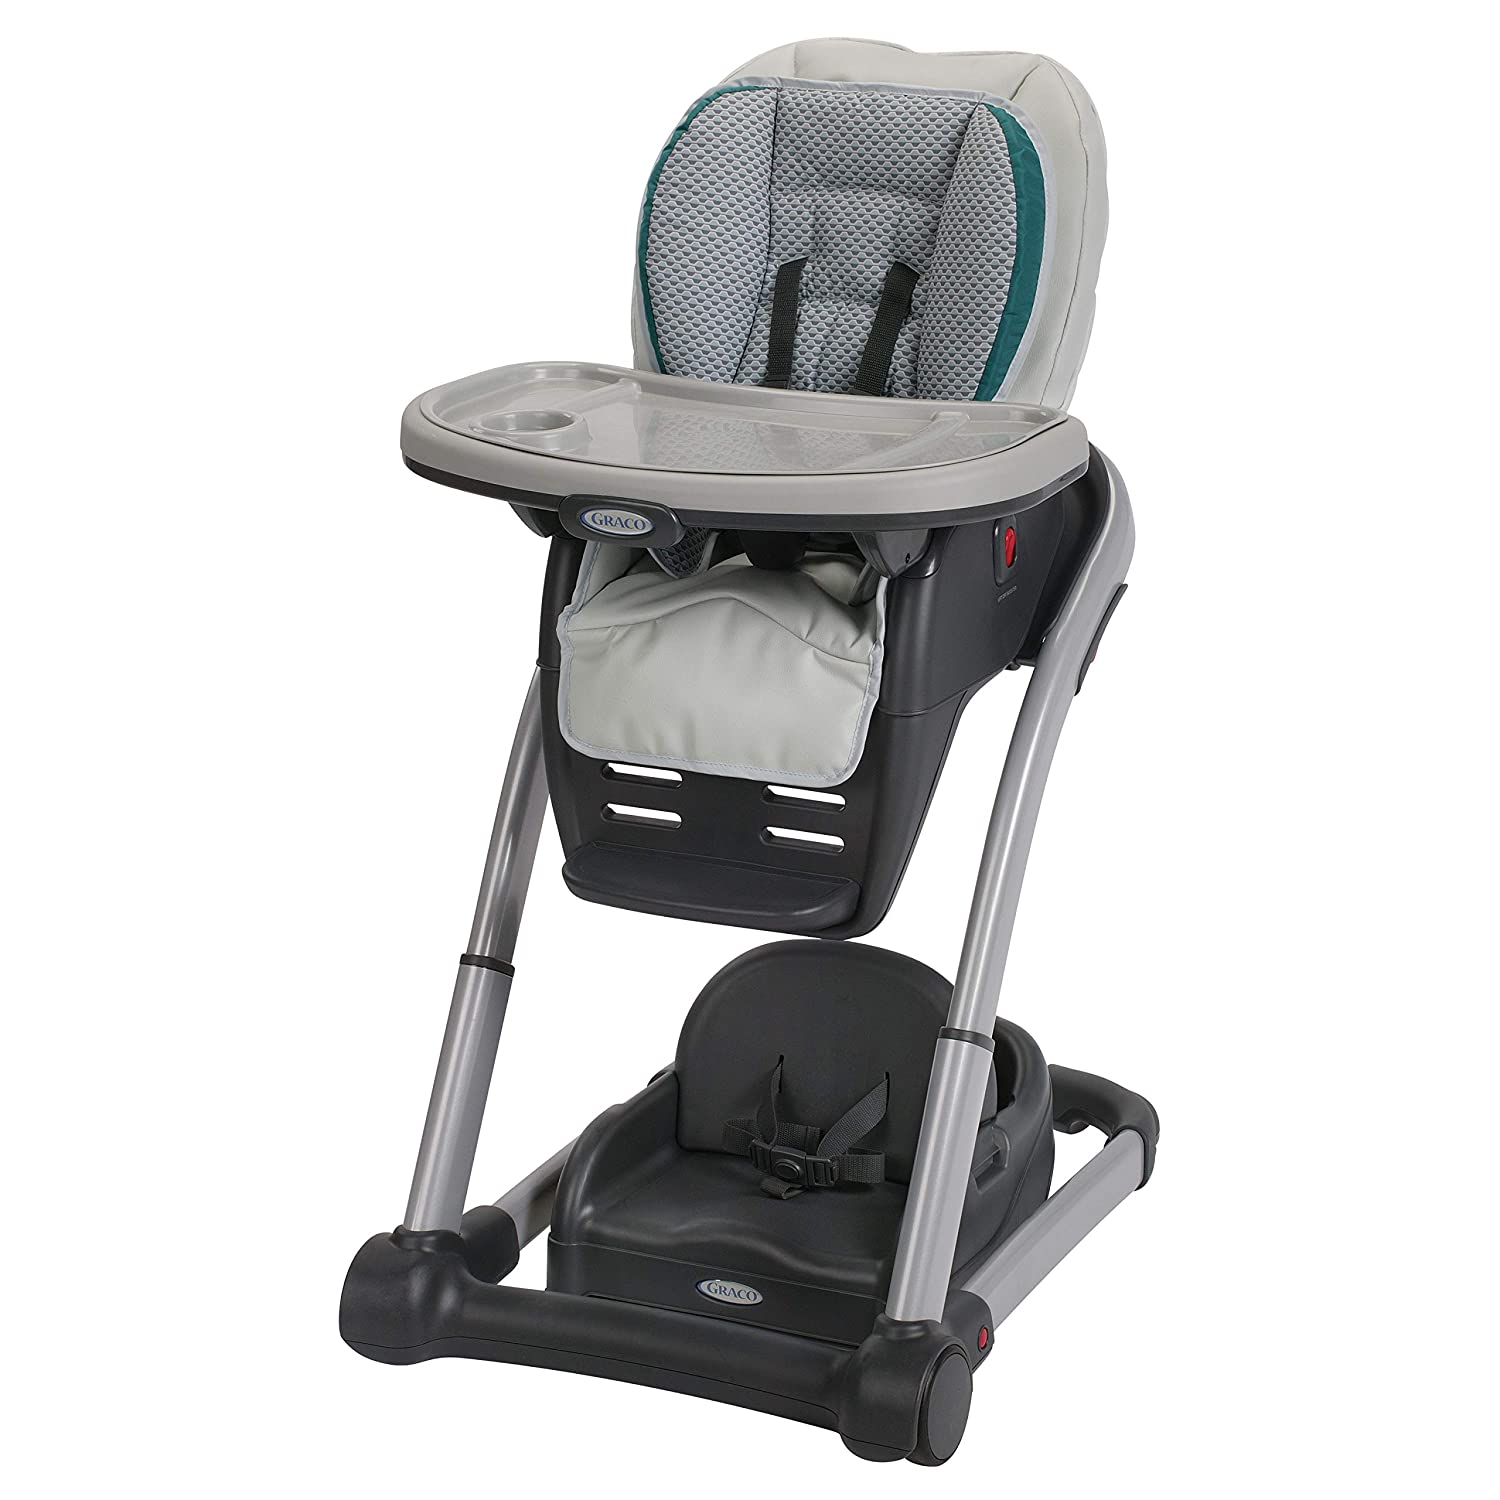 Prime Graco Blossom 6 In 1 Convertible High Chair Sapphire Download Free Architecture Designs Intelgarnamadebymaigaardcom